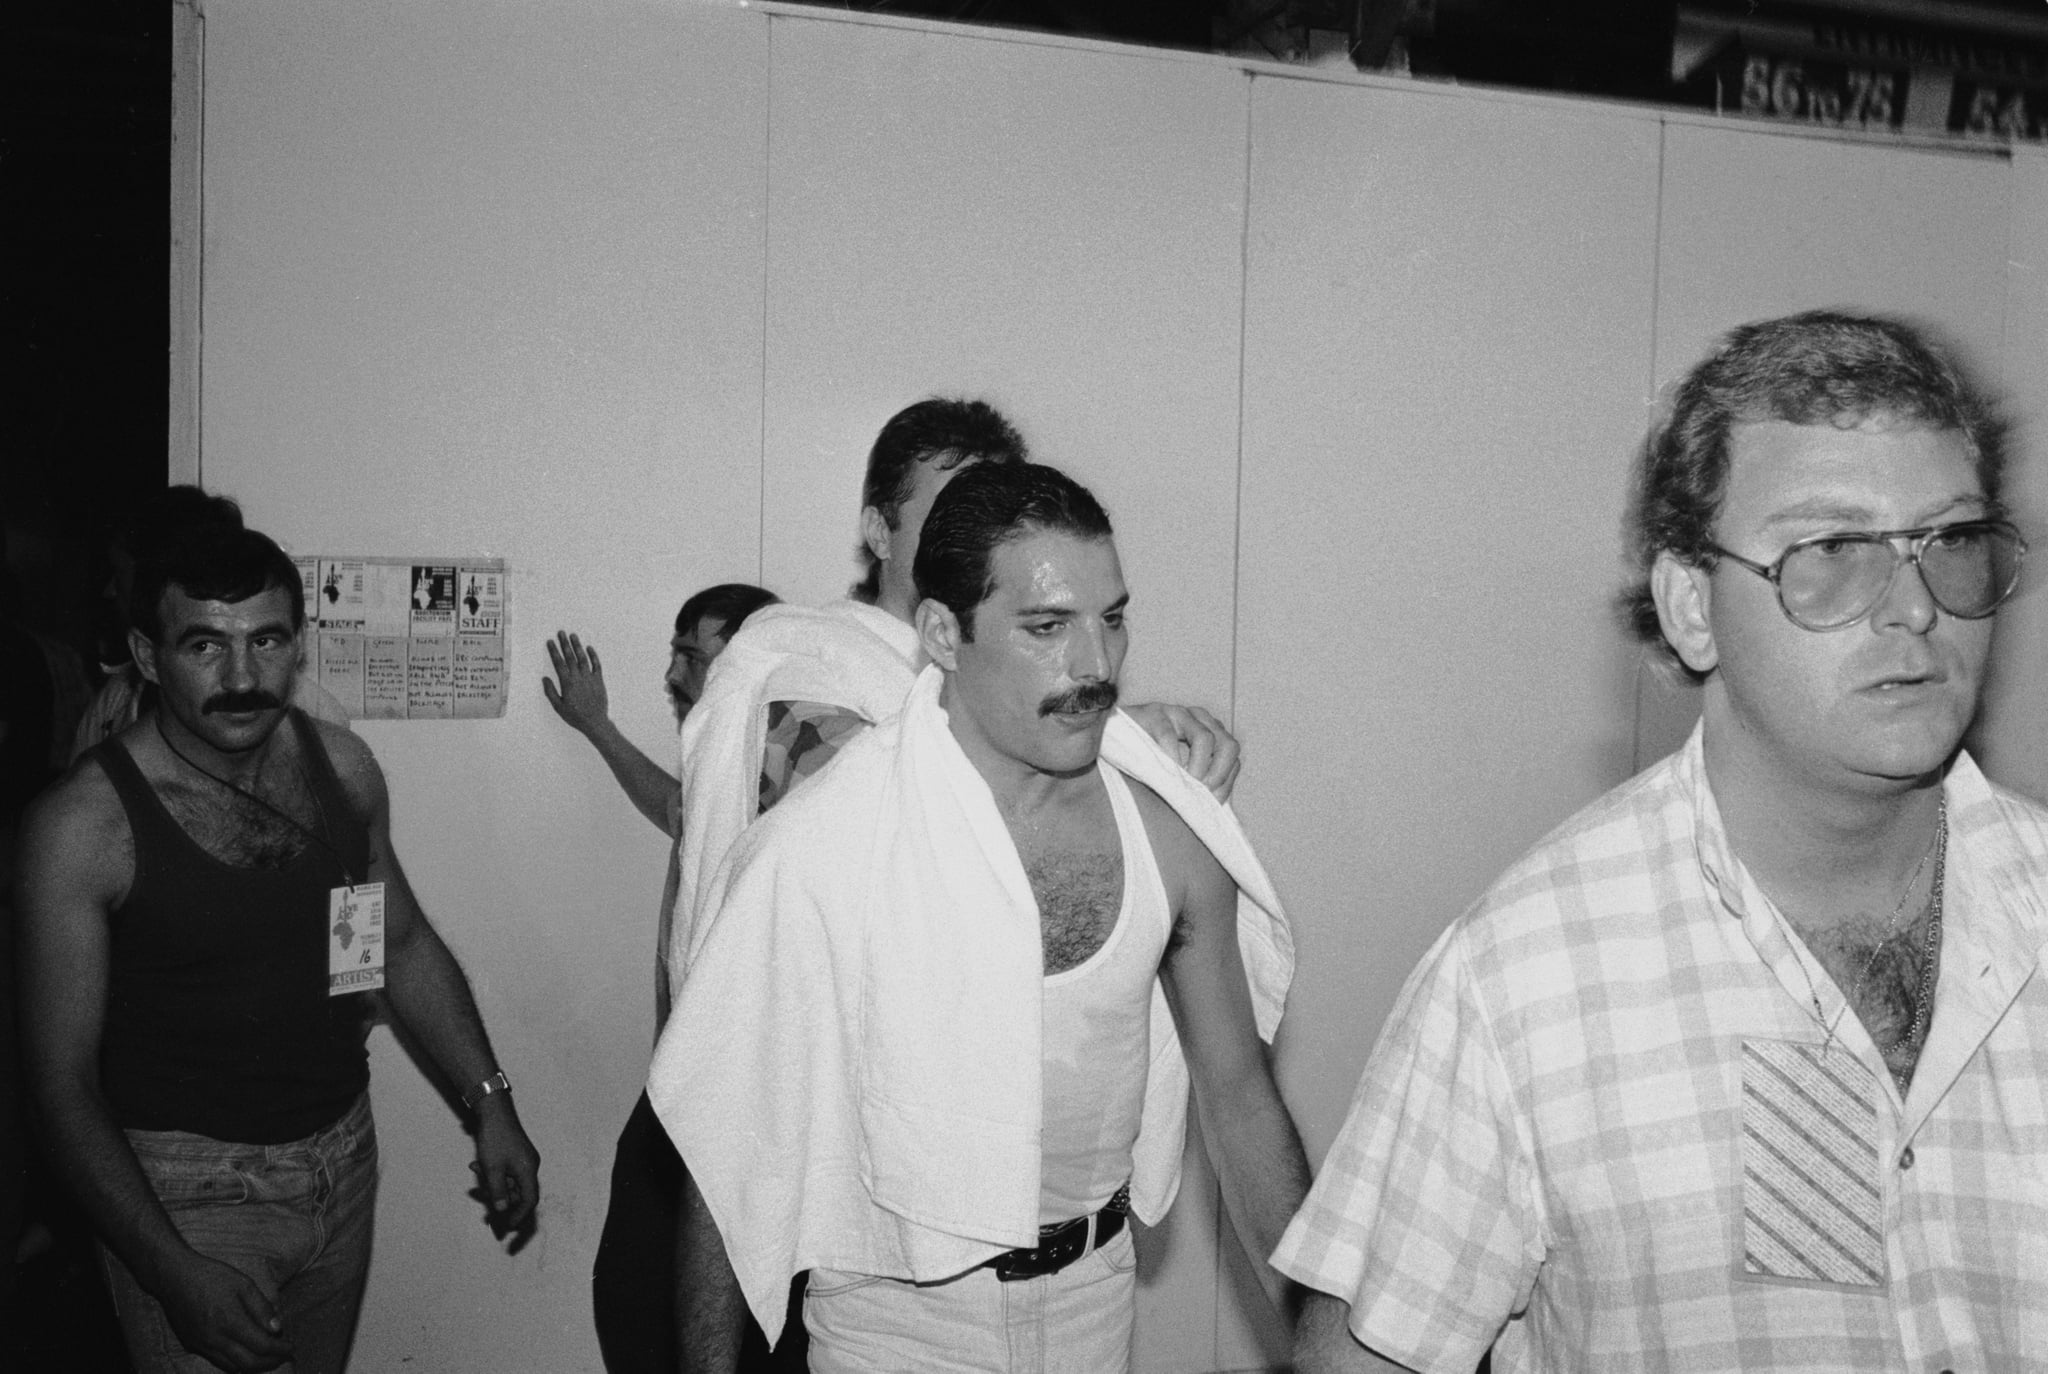 Rock star Freddie Mercury backstage at the Live Aid concert at Wembley, 13th July 1985. On the left is his boyfriend Jim Hutton. (Photo by Dave Hogan/Hulton Archive/Getty Images)